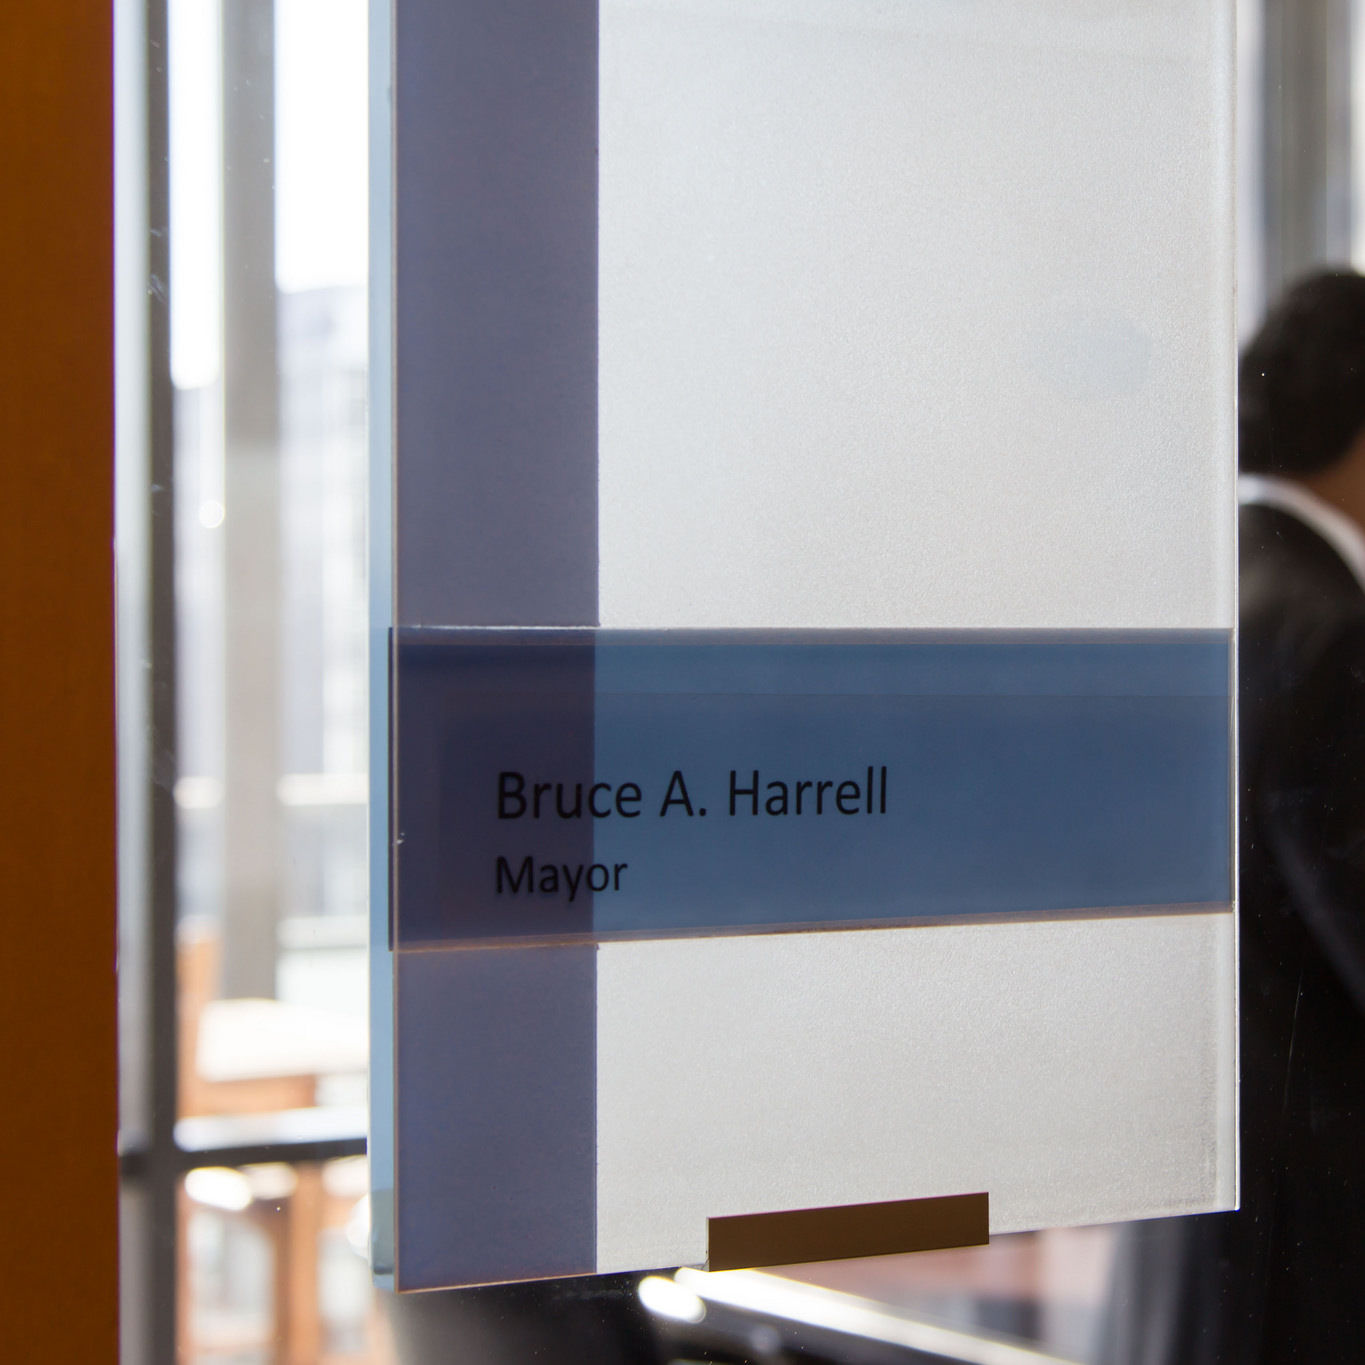 Bruce harrell door sign mayor seattle city council s5q78e